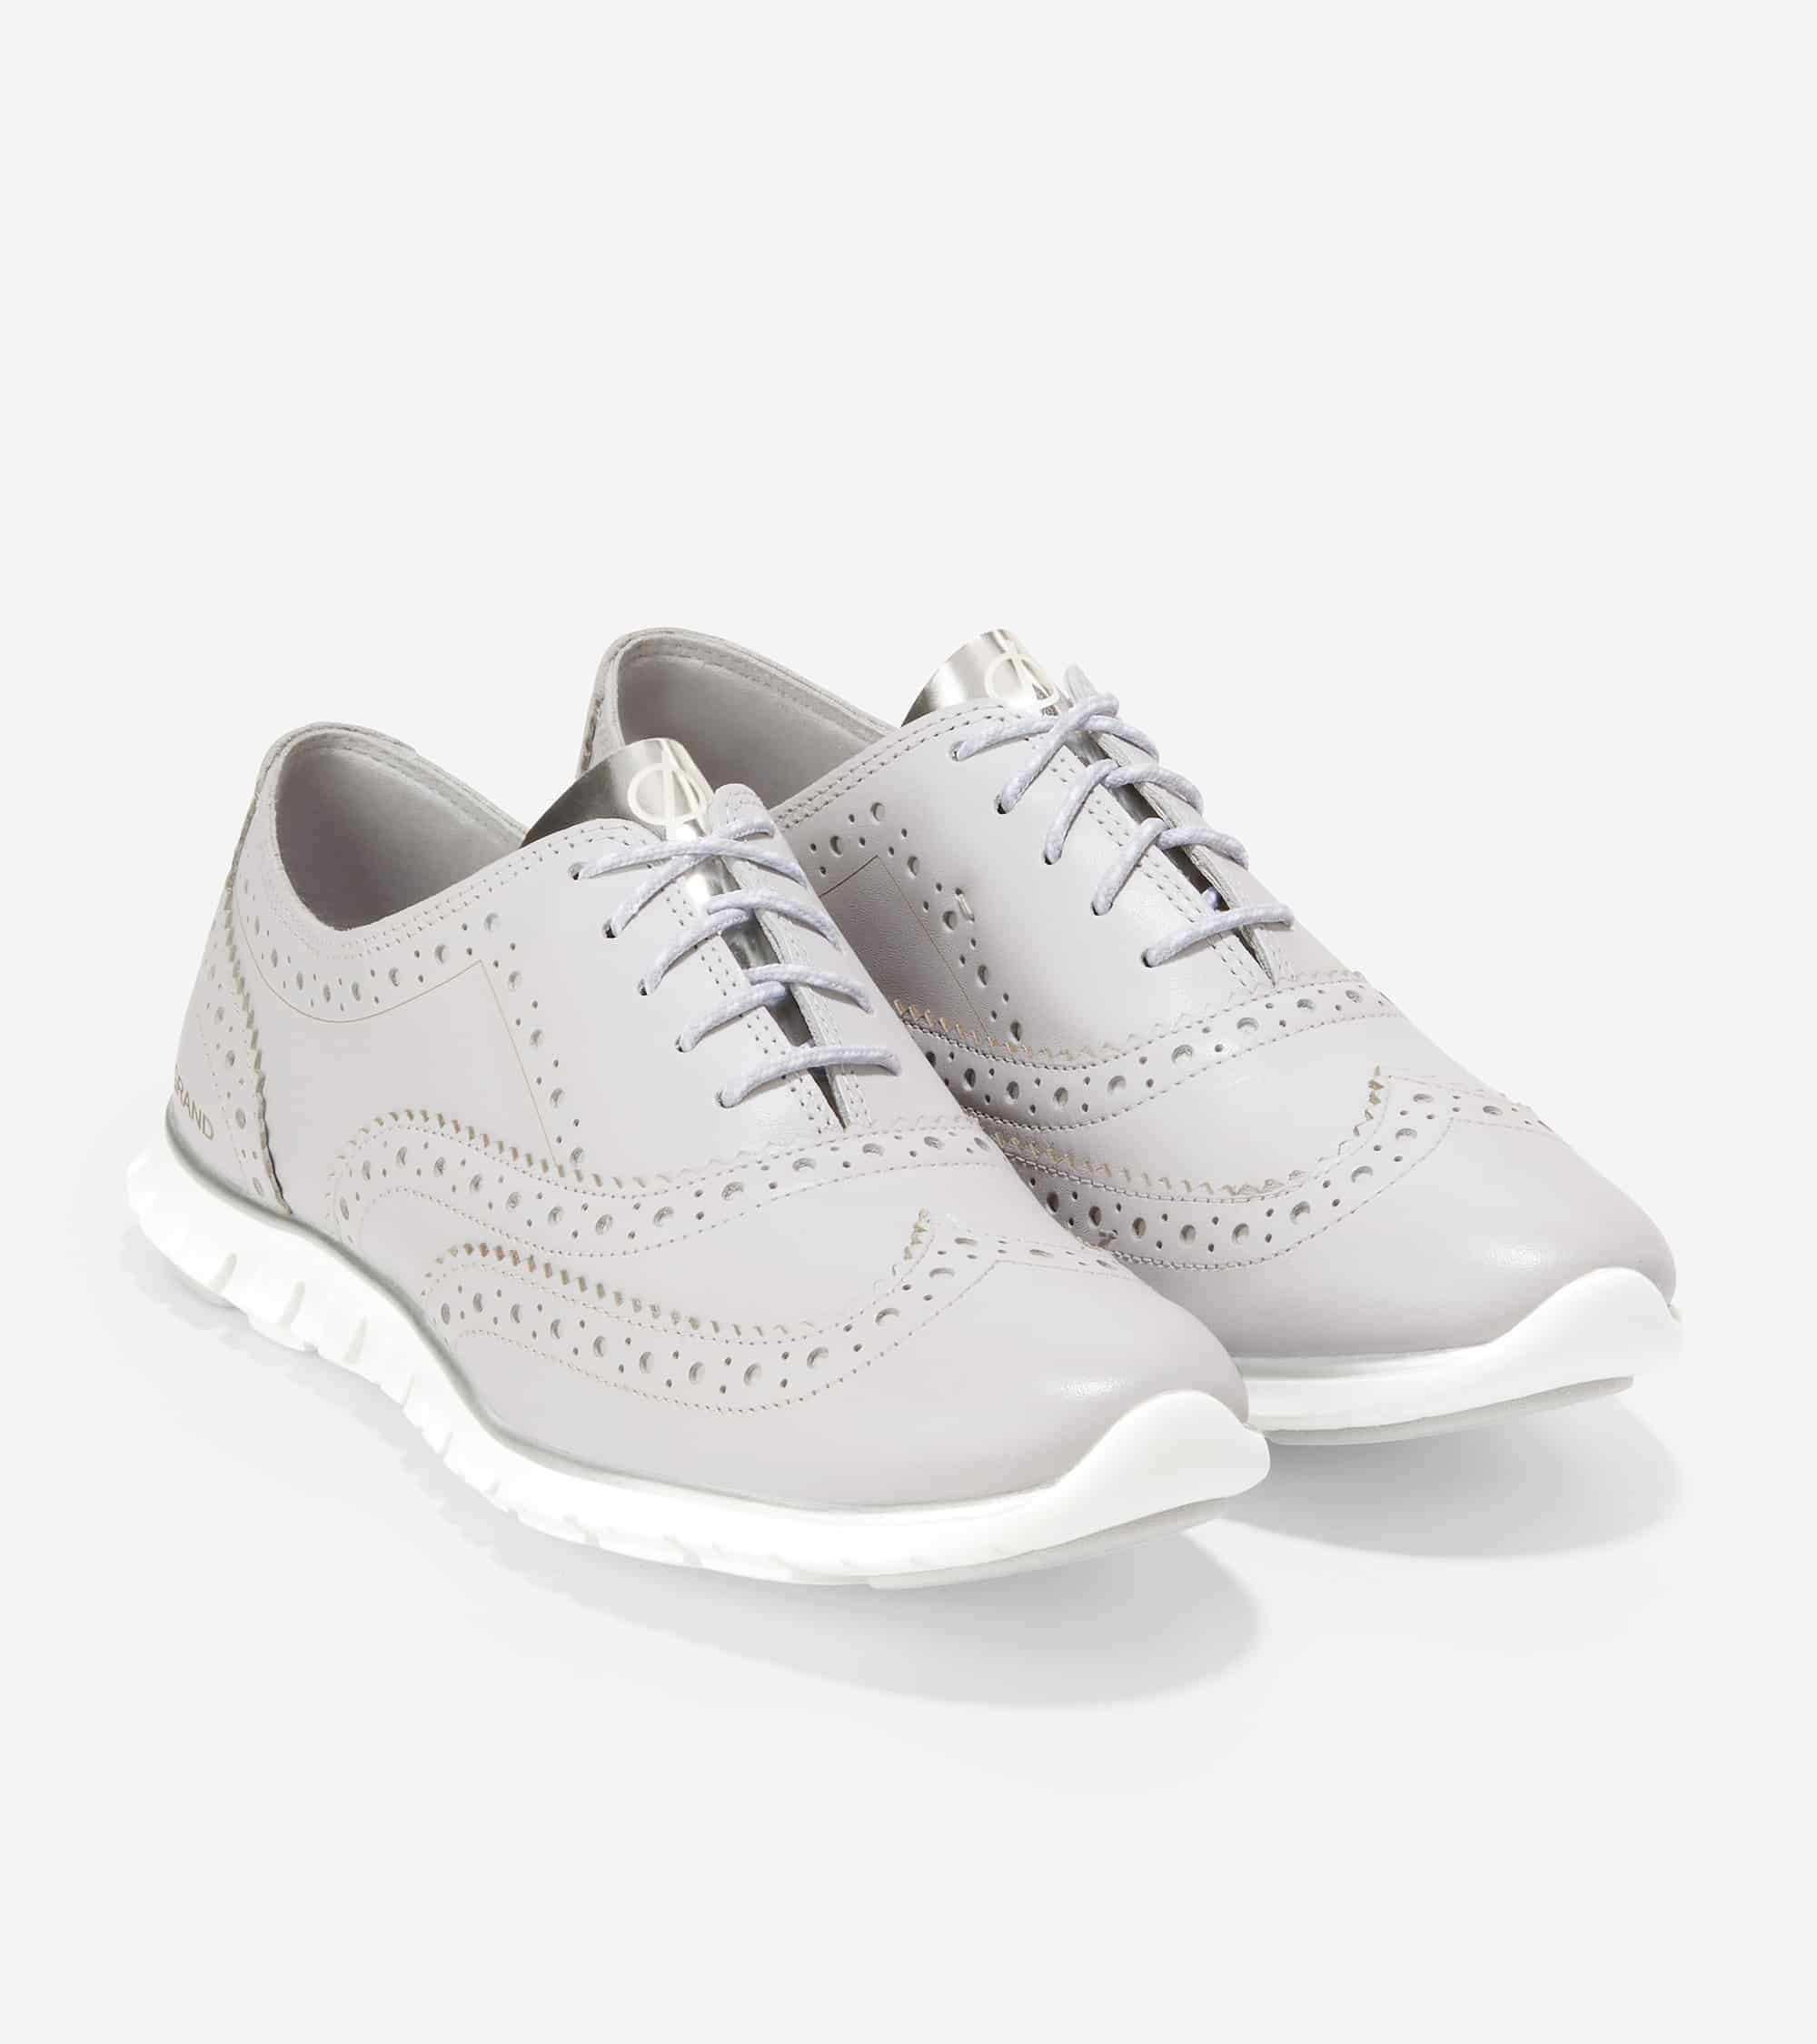 ZEROGRAND WING OX CLOSED HOLE II COOL GRAY LTHR / CH ARGENTO / OPTIC WHITE MIDSOLE / COOL GRAY RUBBER PODS